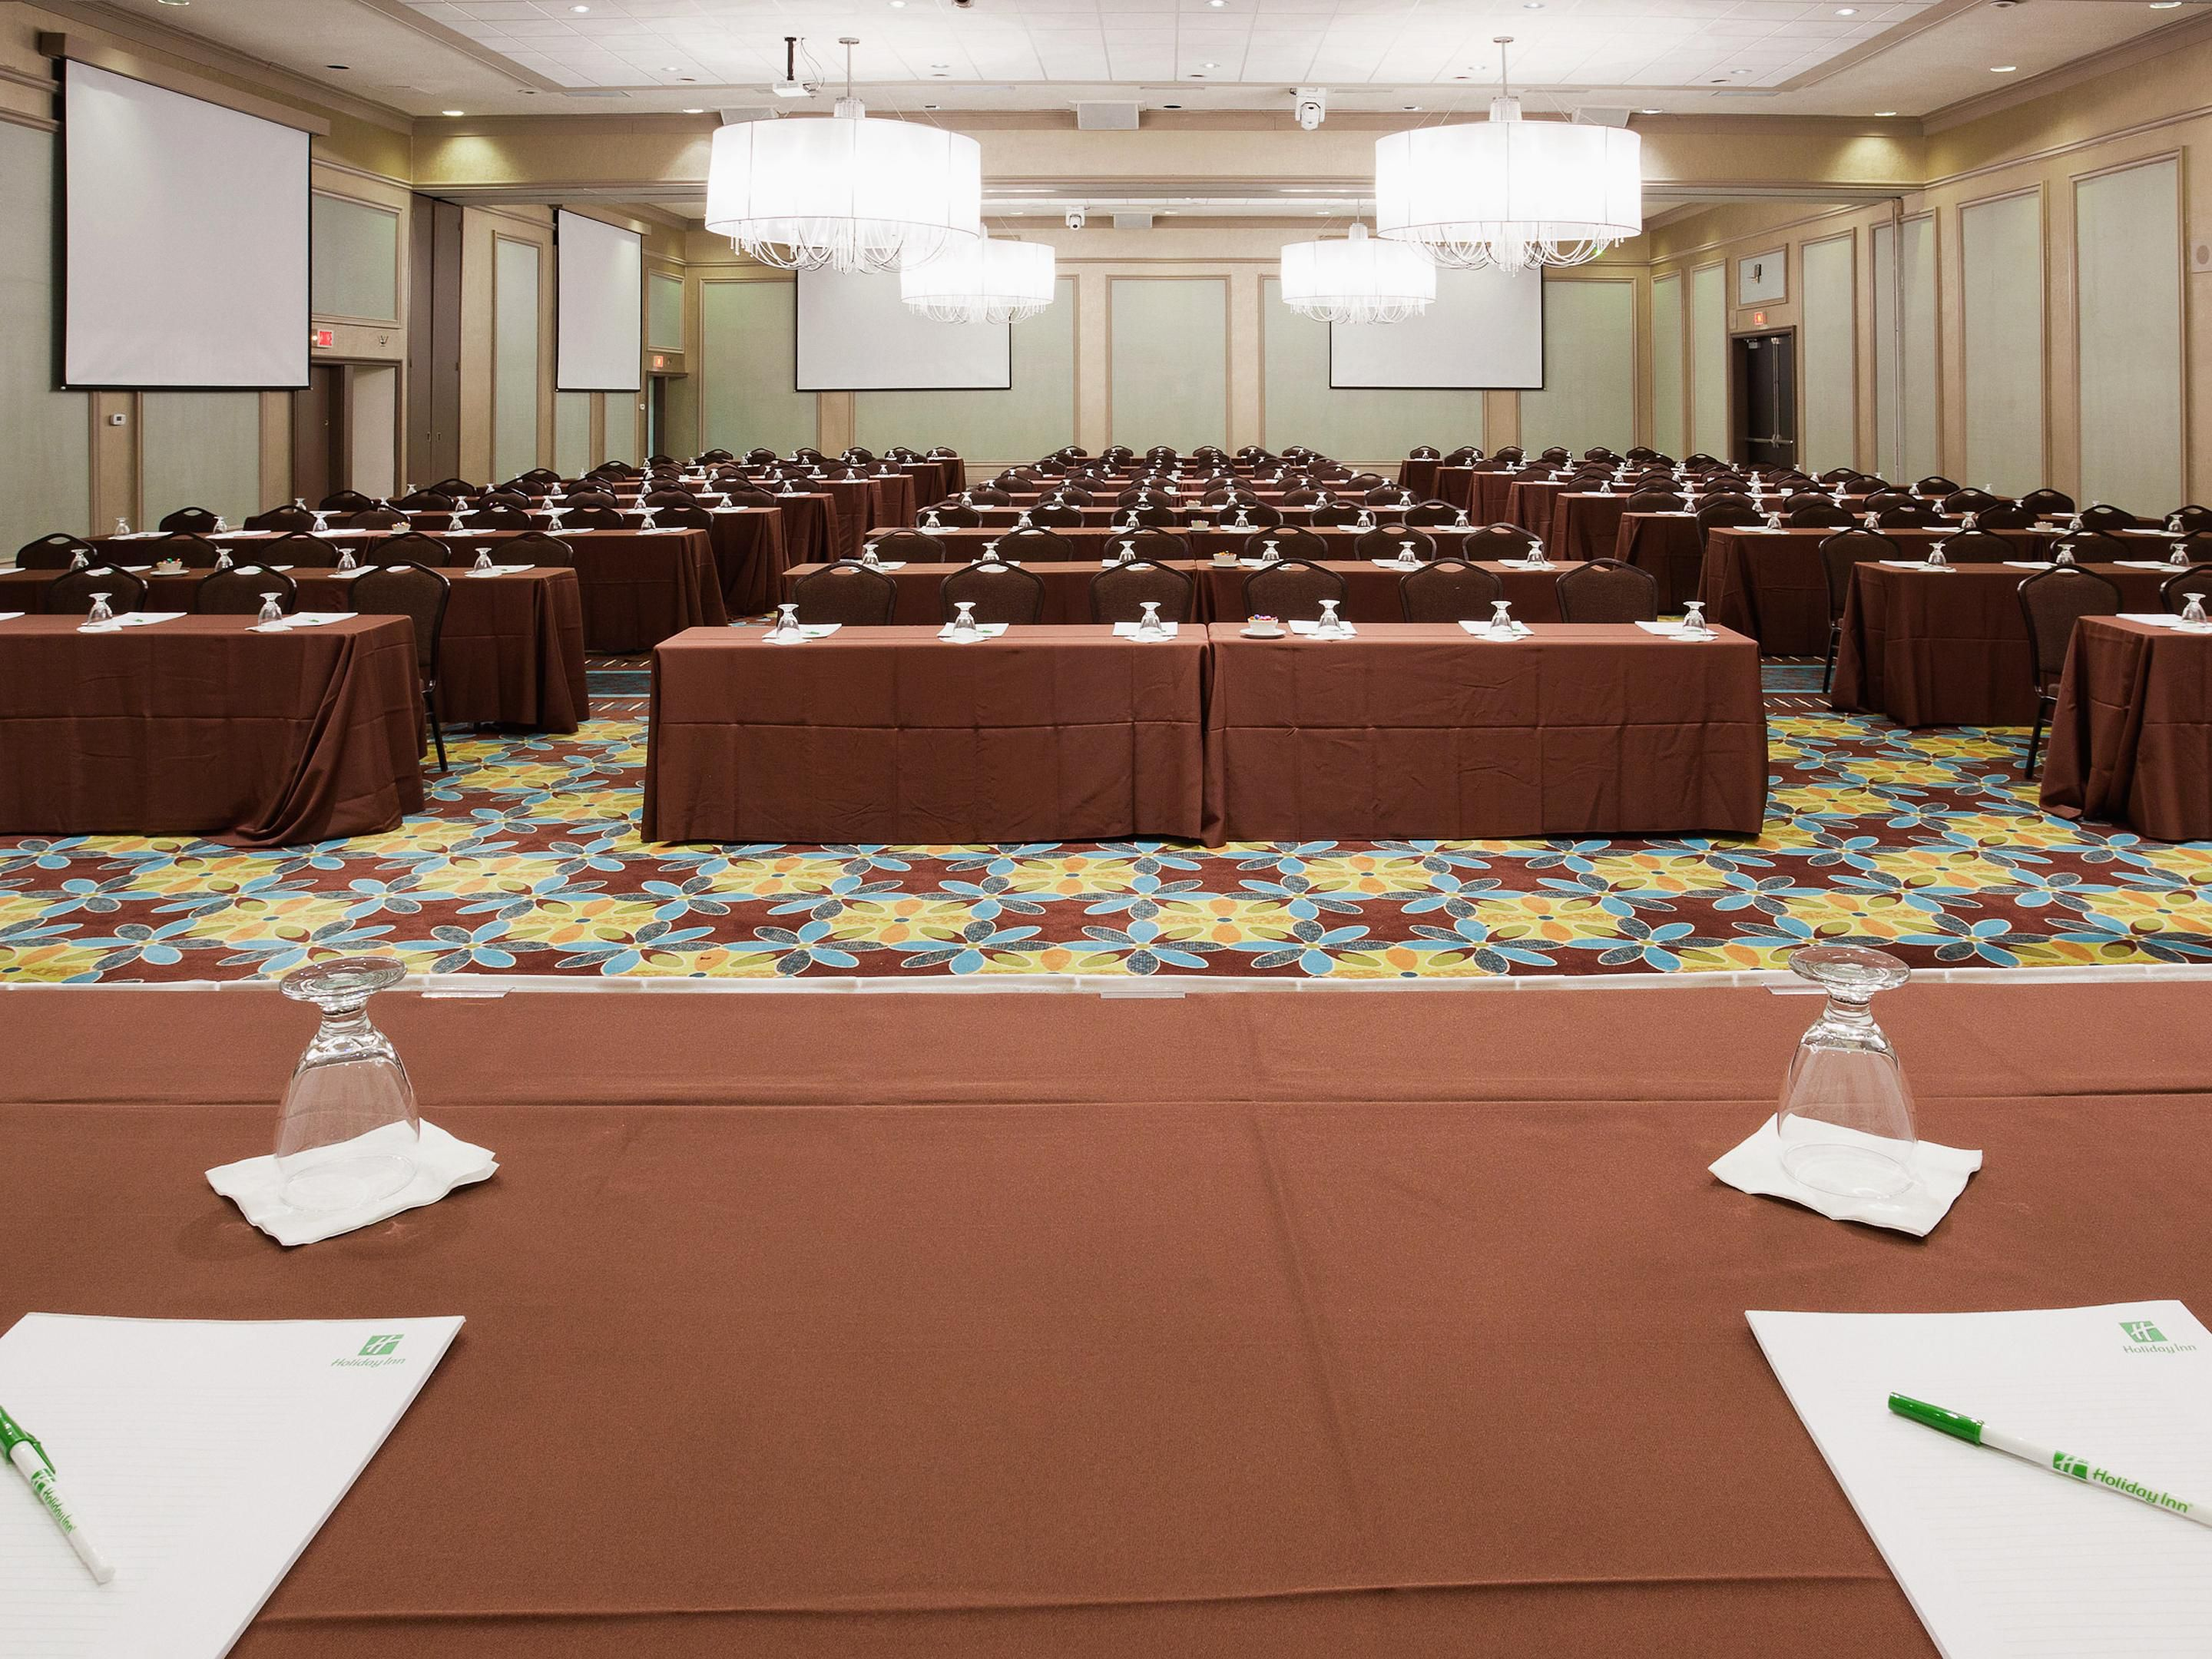 Business Meeting classroom set-up in Champagne Ballroom